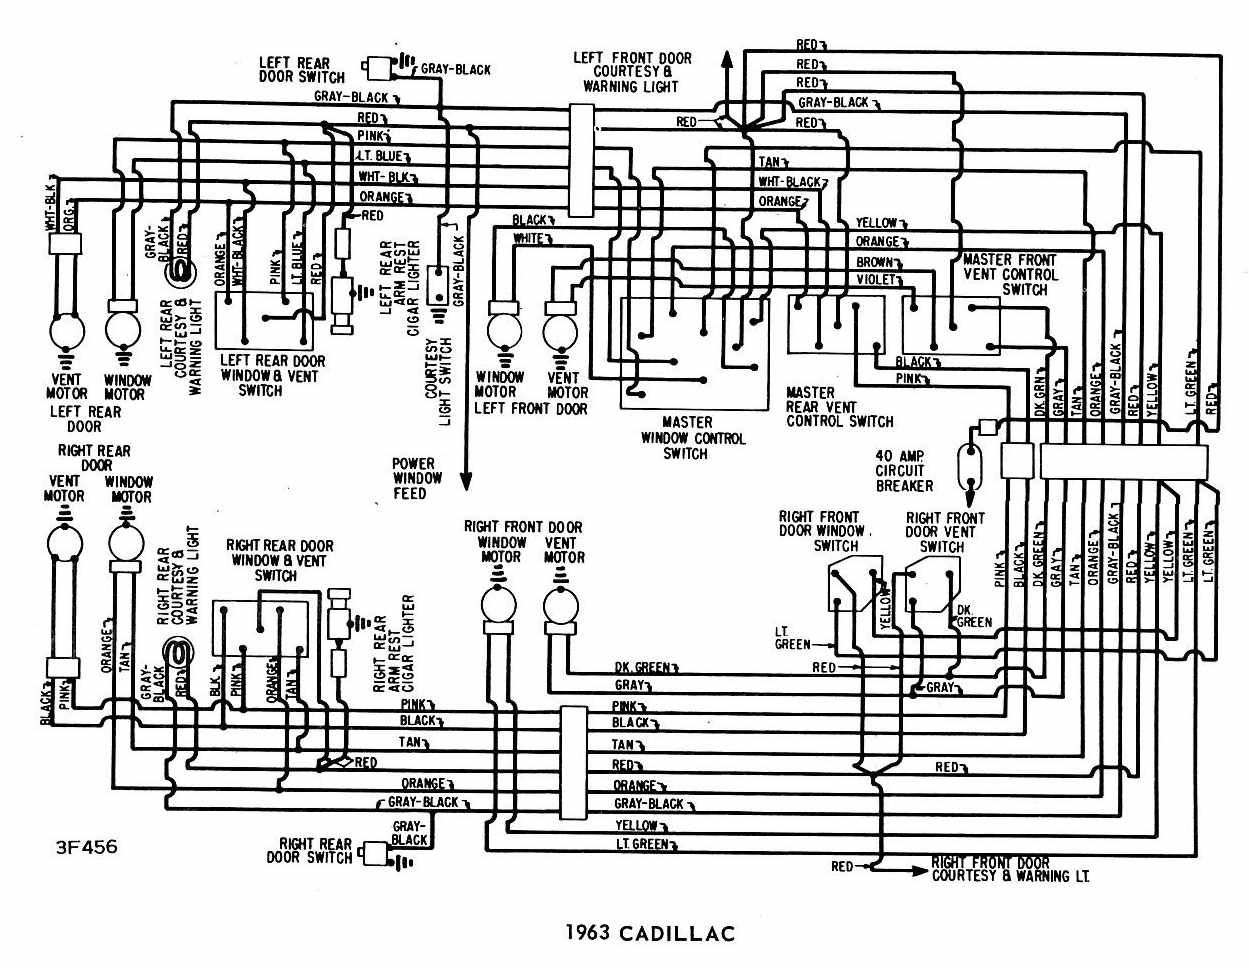 small resolution of 1968 cadillac ac wiring diagram wiring diagram user 1968 cadillac ac wiring diagram